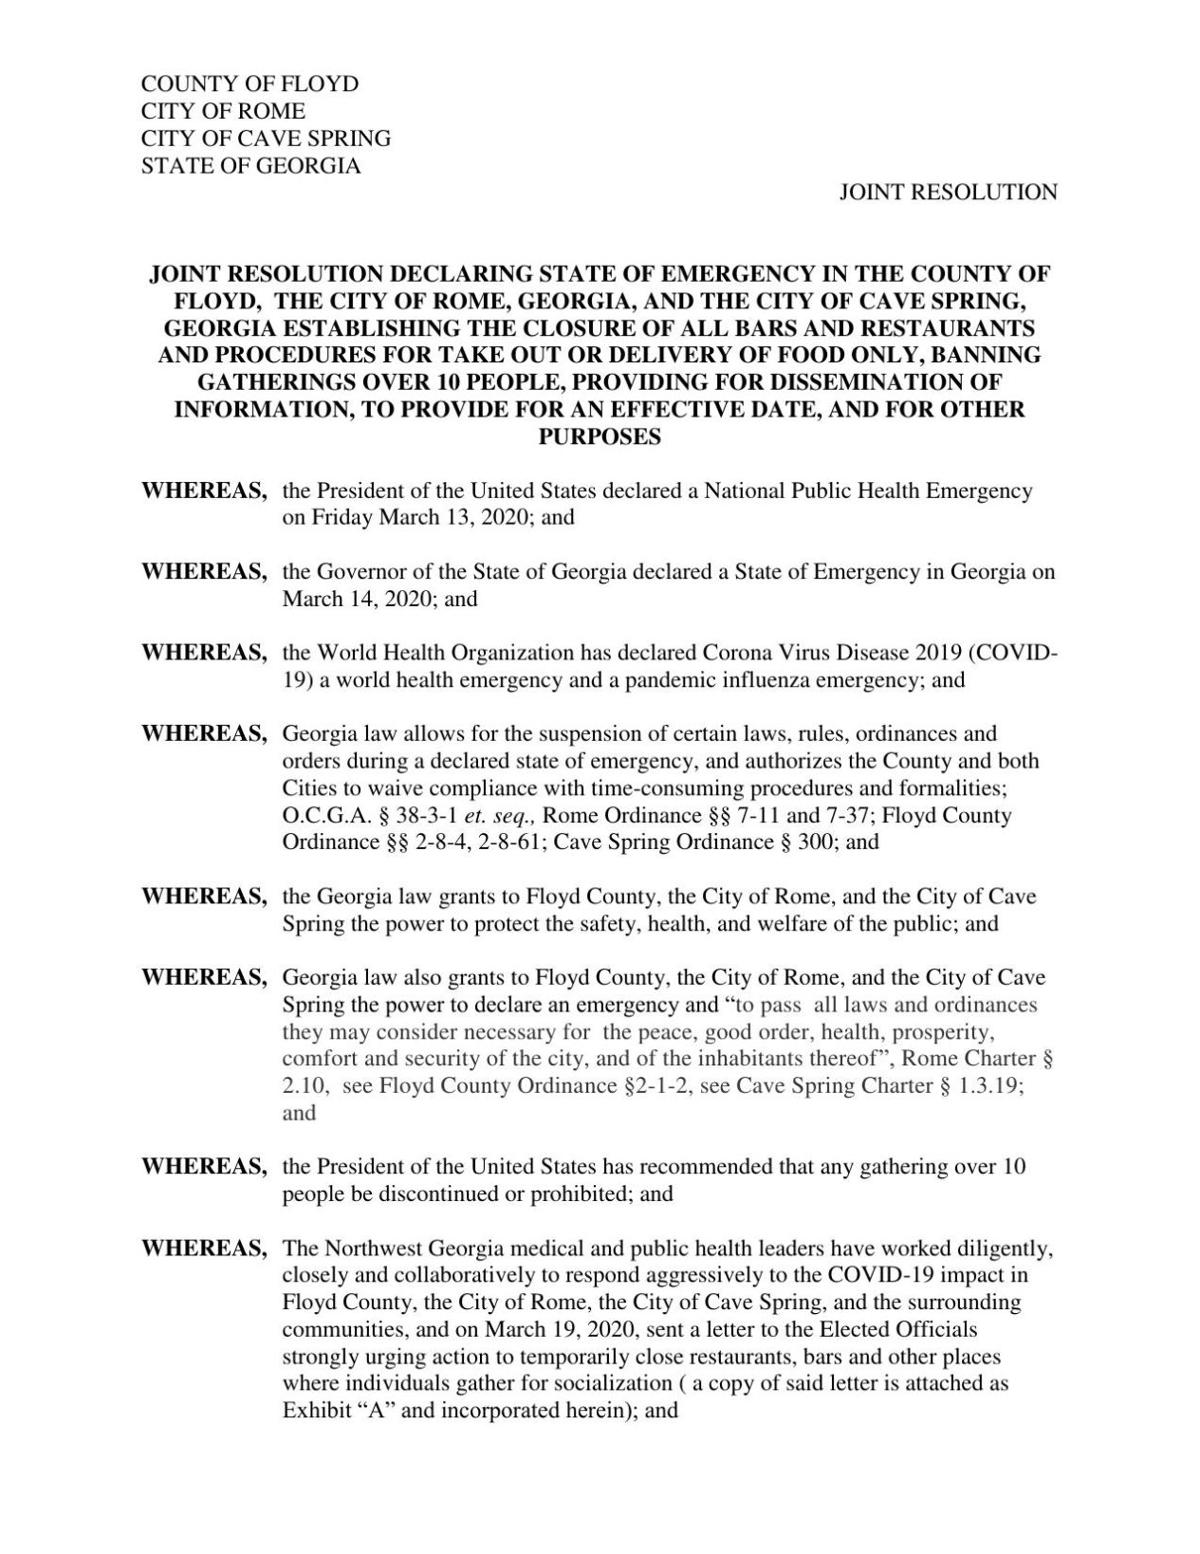 Joint State of Emergency declaration